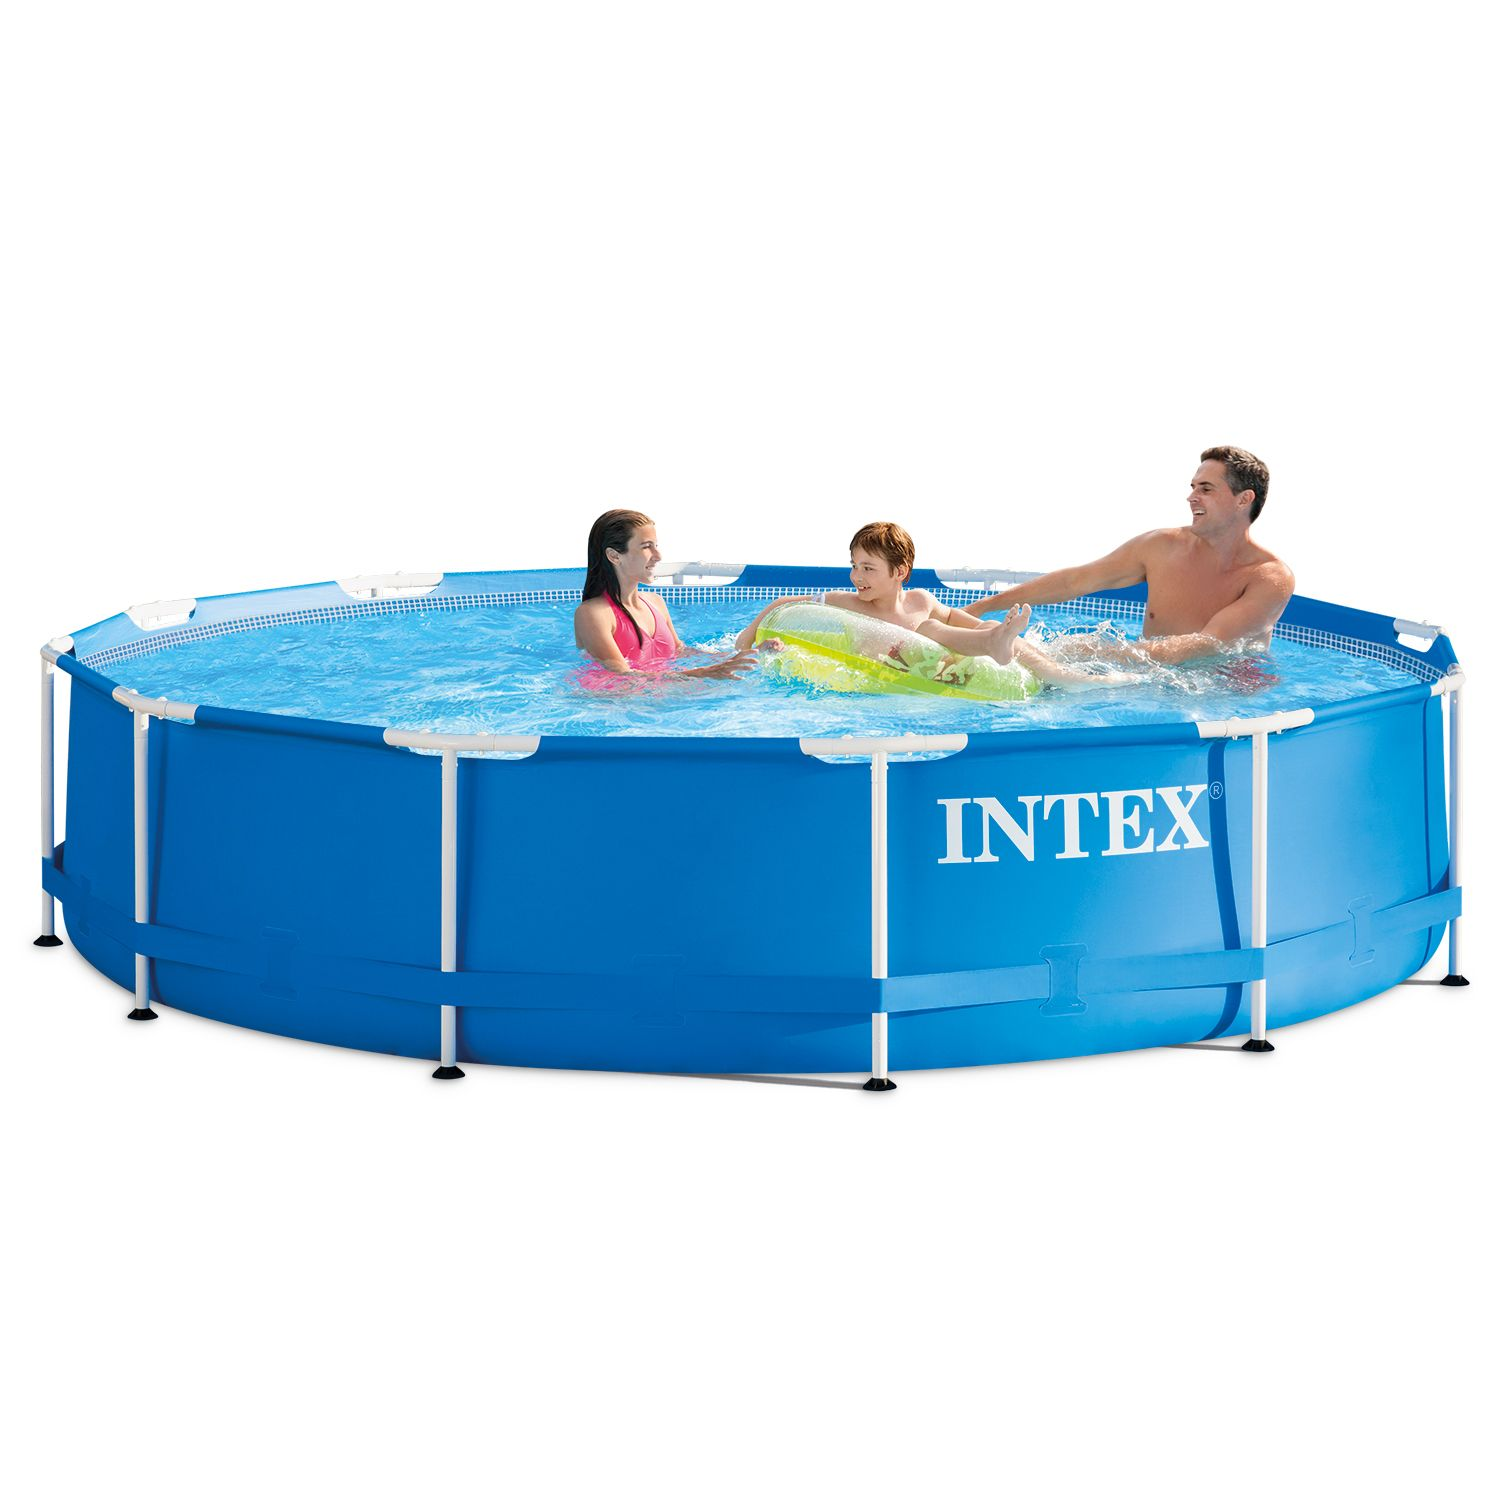 Intex 12 X 30 Metal Frame Above Ground Swimming Pool With Filter Pump Walmart Com Above Ground Swimming Pools Swimming Pools Swimming Pool Ladders